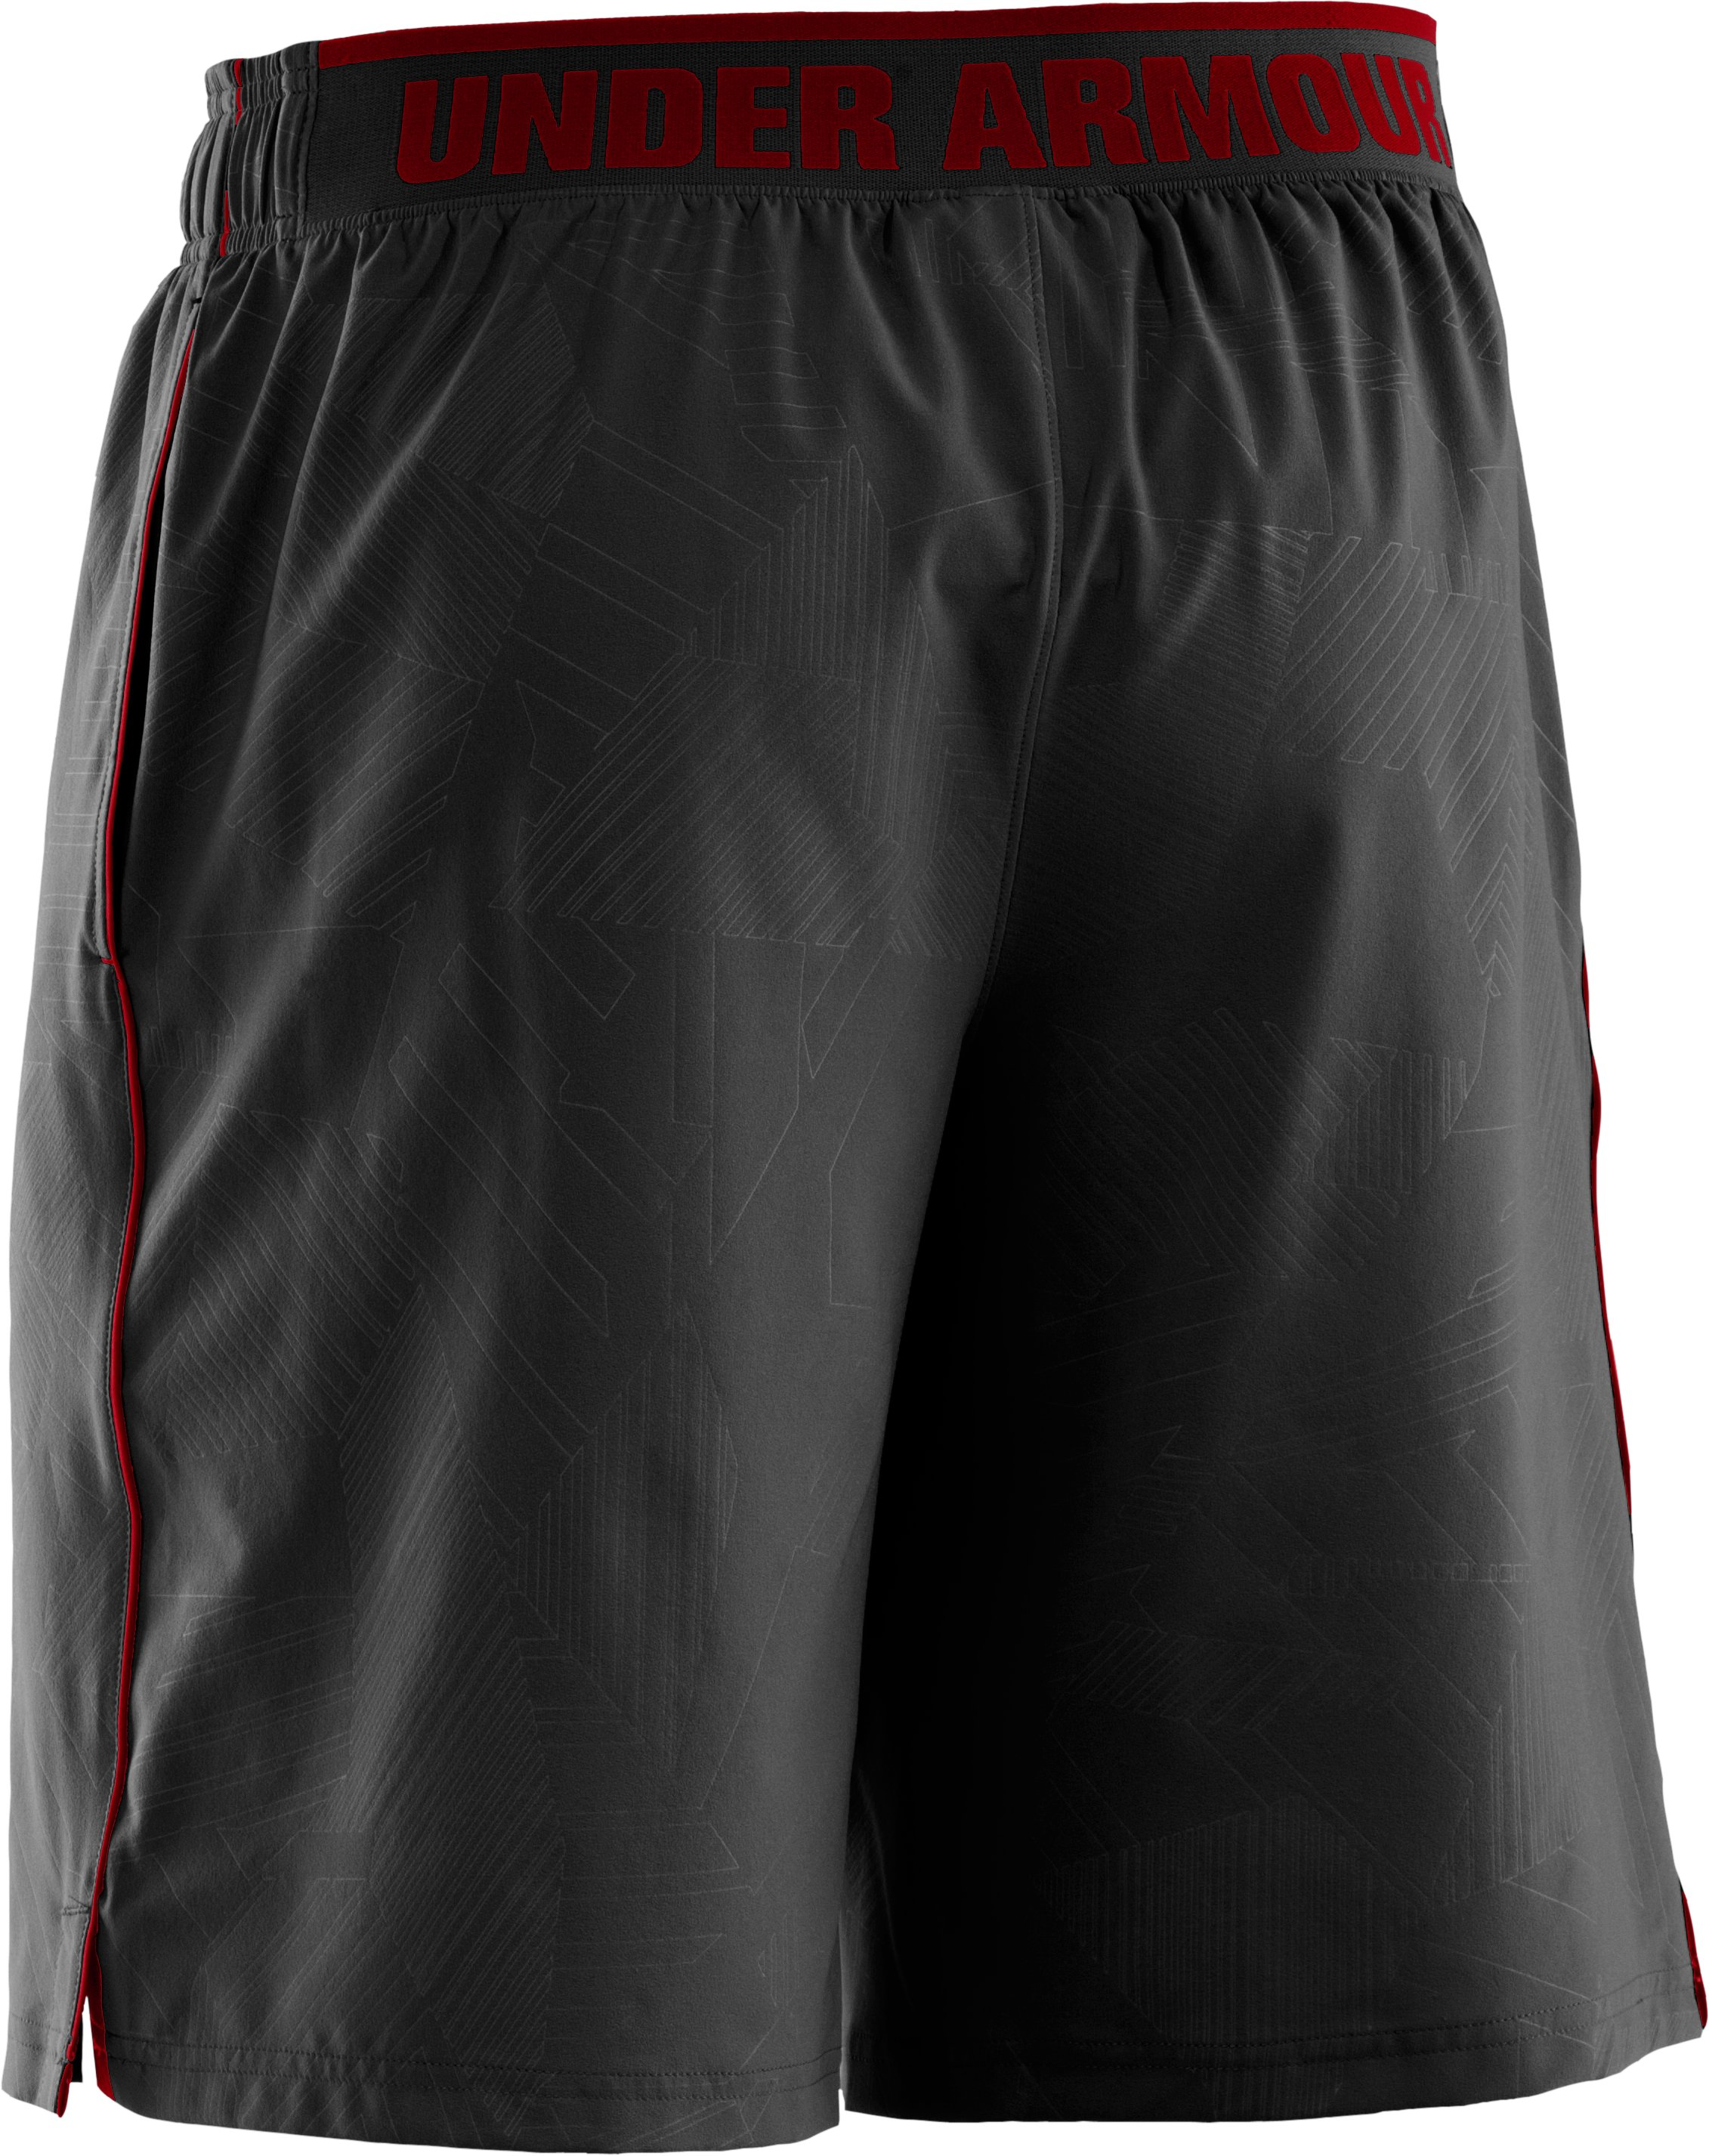 "Men's UA Mirage Printed 10"" Shorts, Black ,"